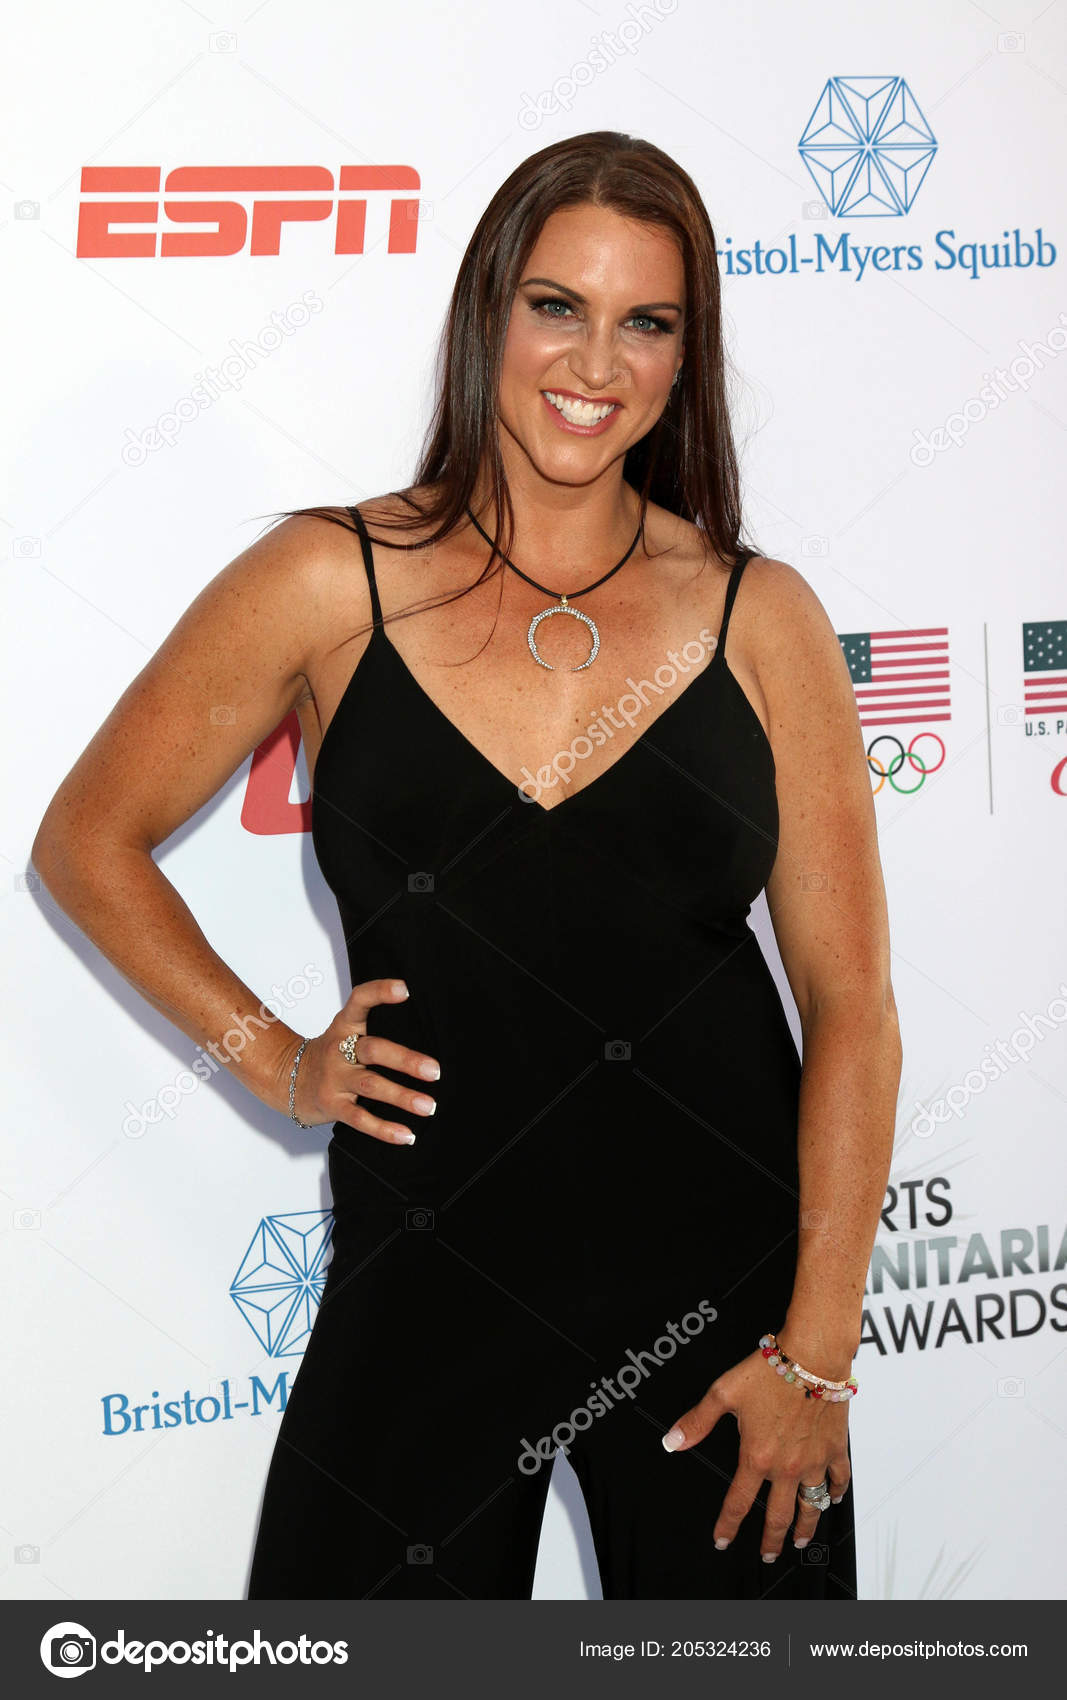 Stephanie McMahon nudes (19 photo), Topless, Cleavage, Selfie, butt 2019